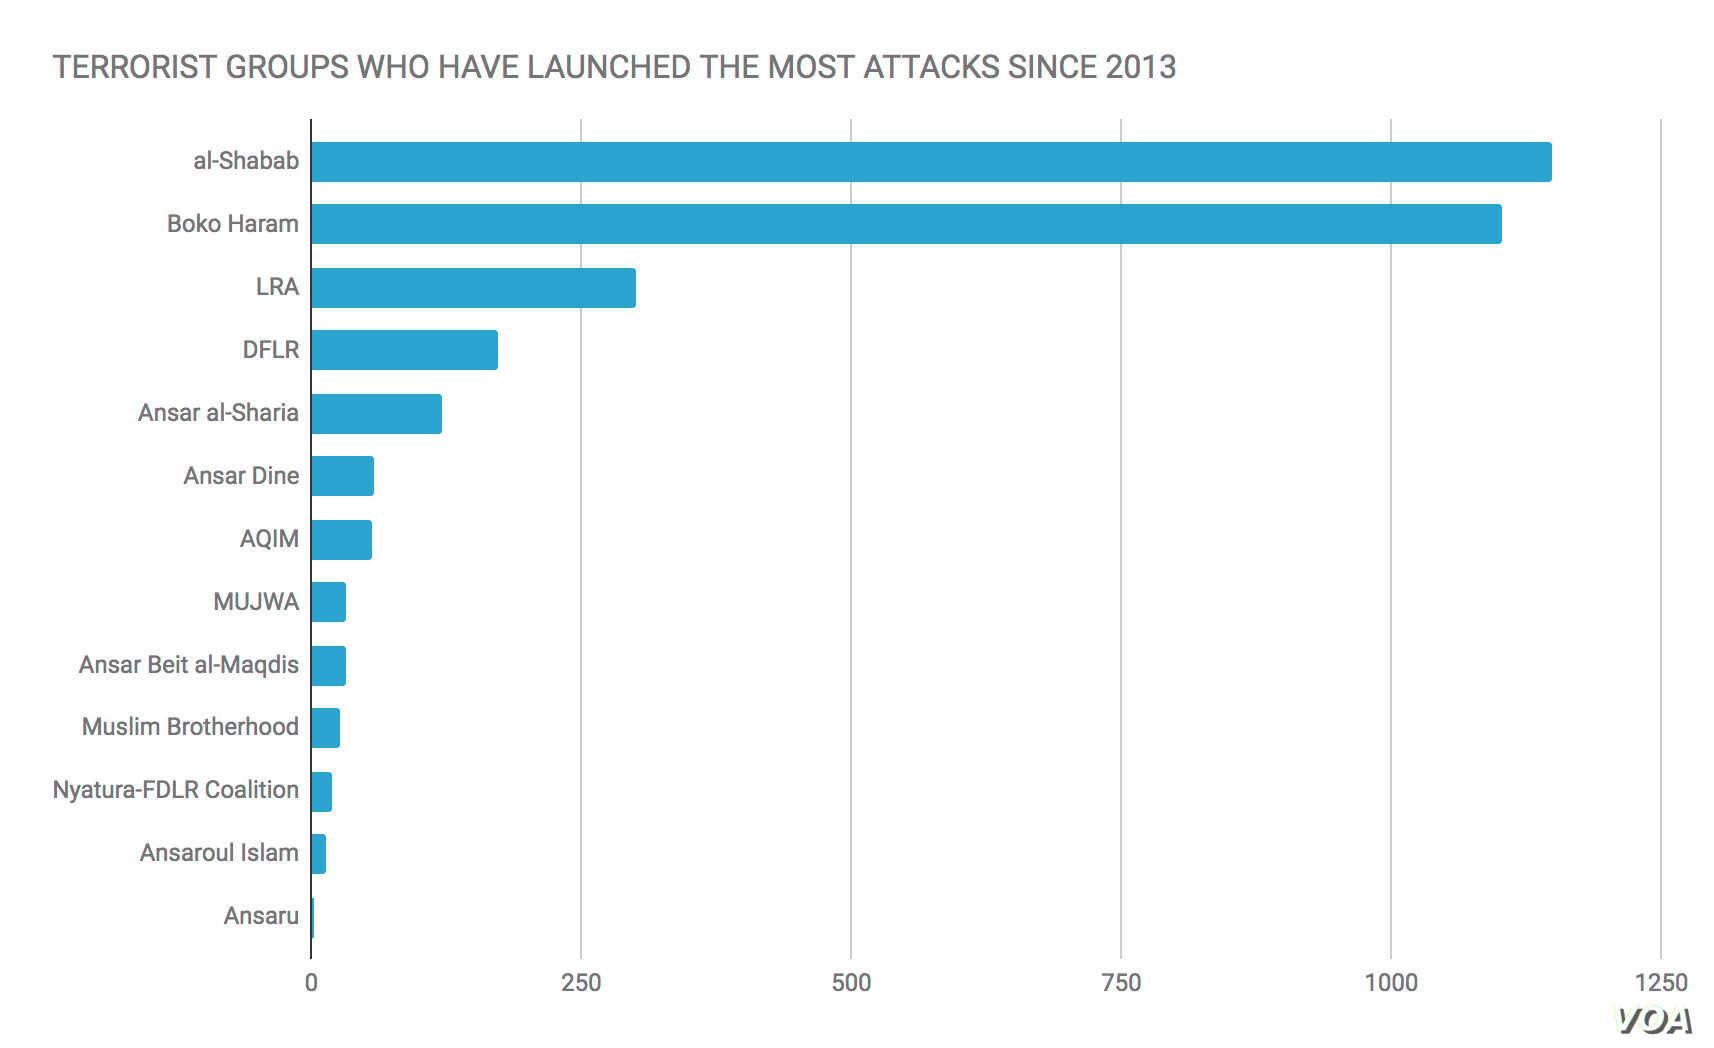 Terrorism Deaths: Terrorist Groups That Have Launched the Most Attacks in Africa Since 2013